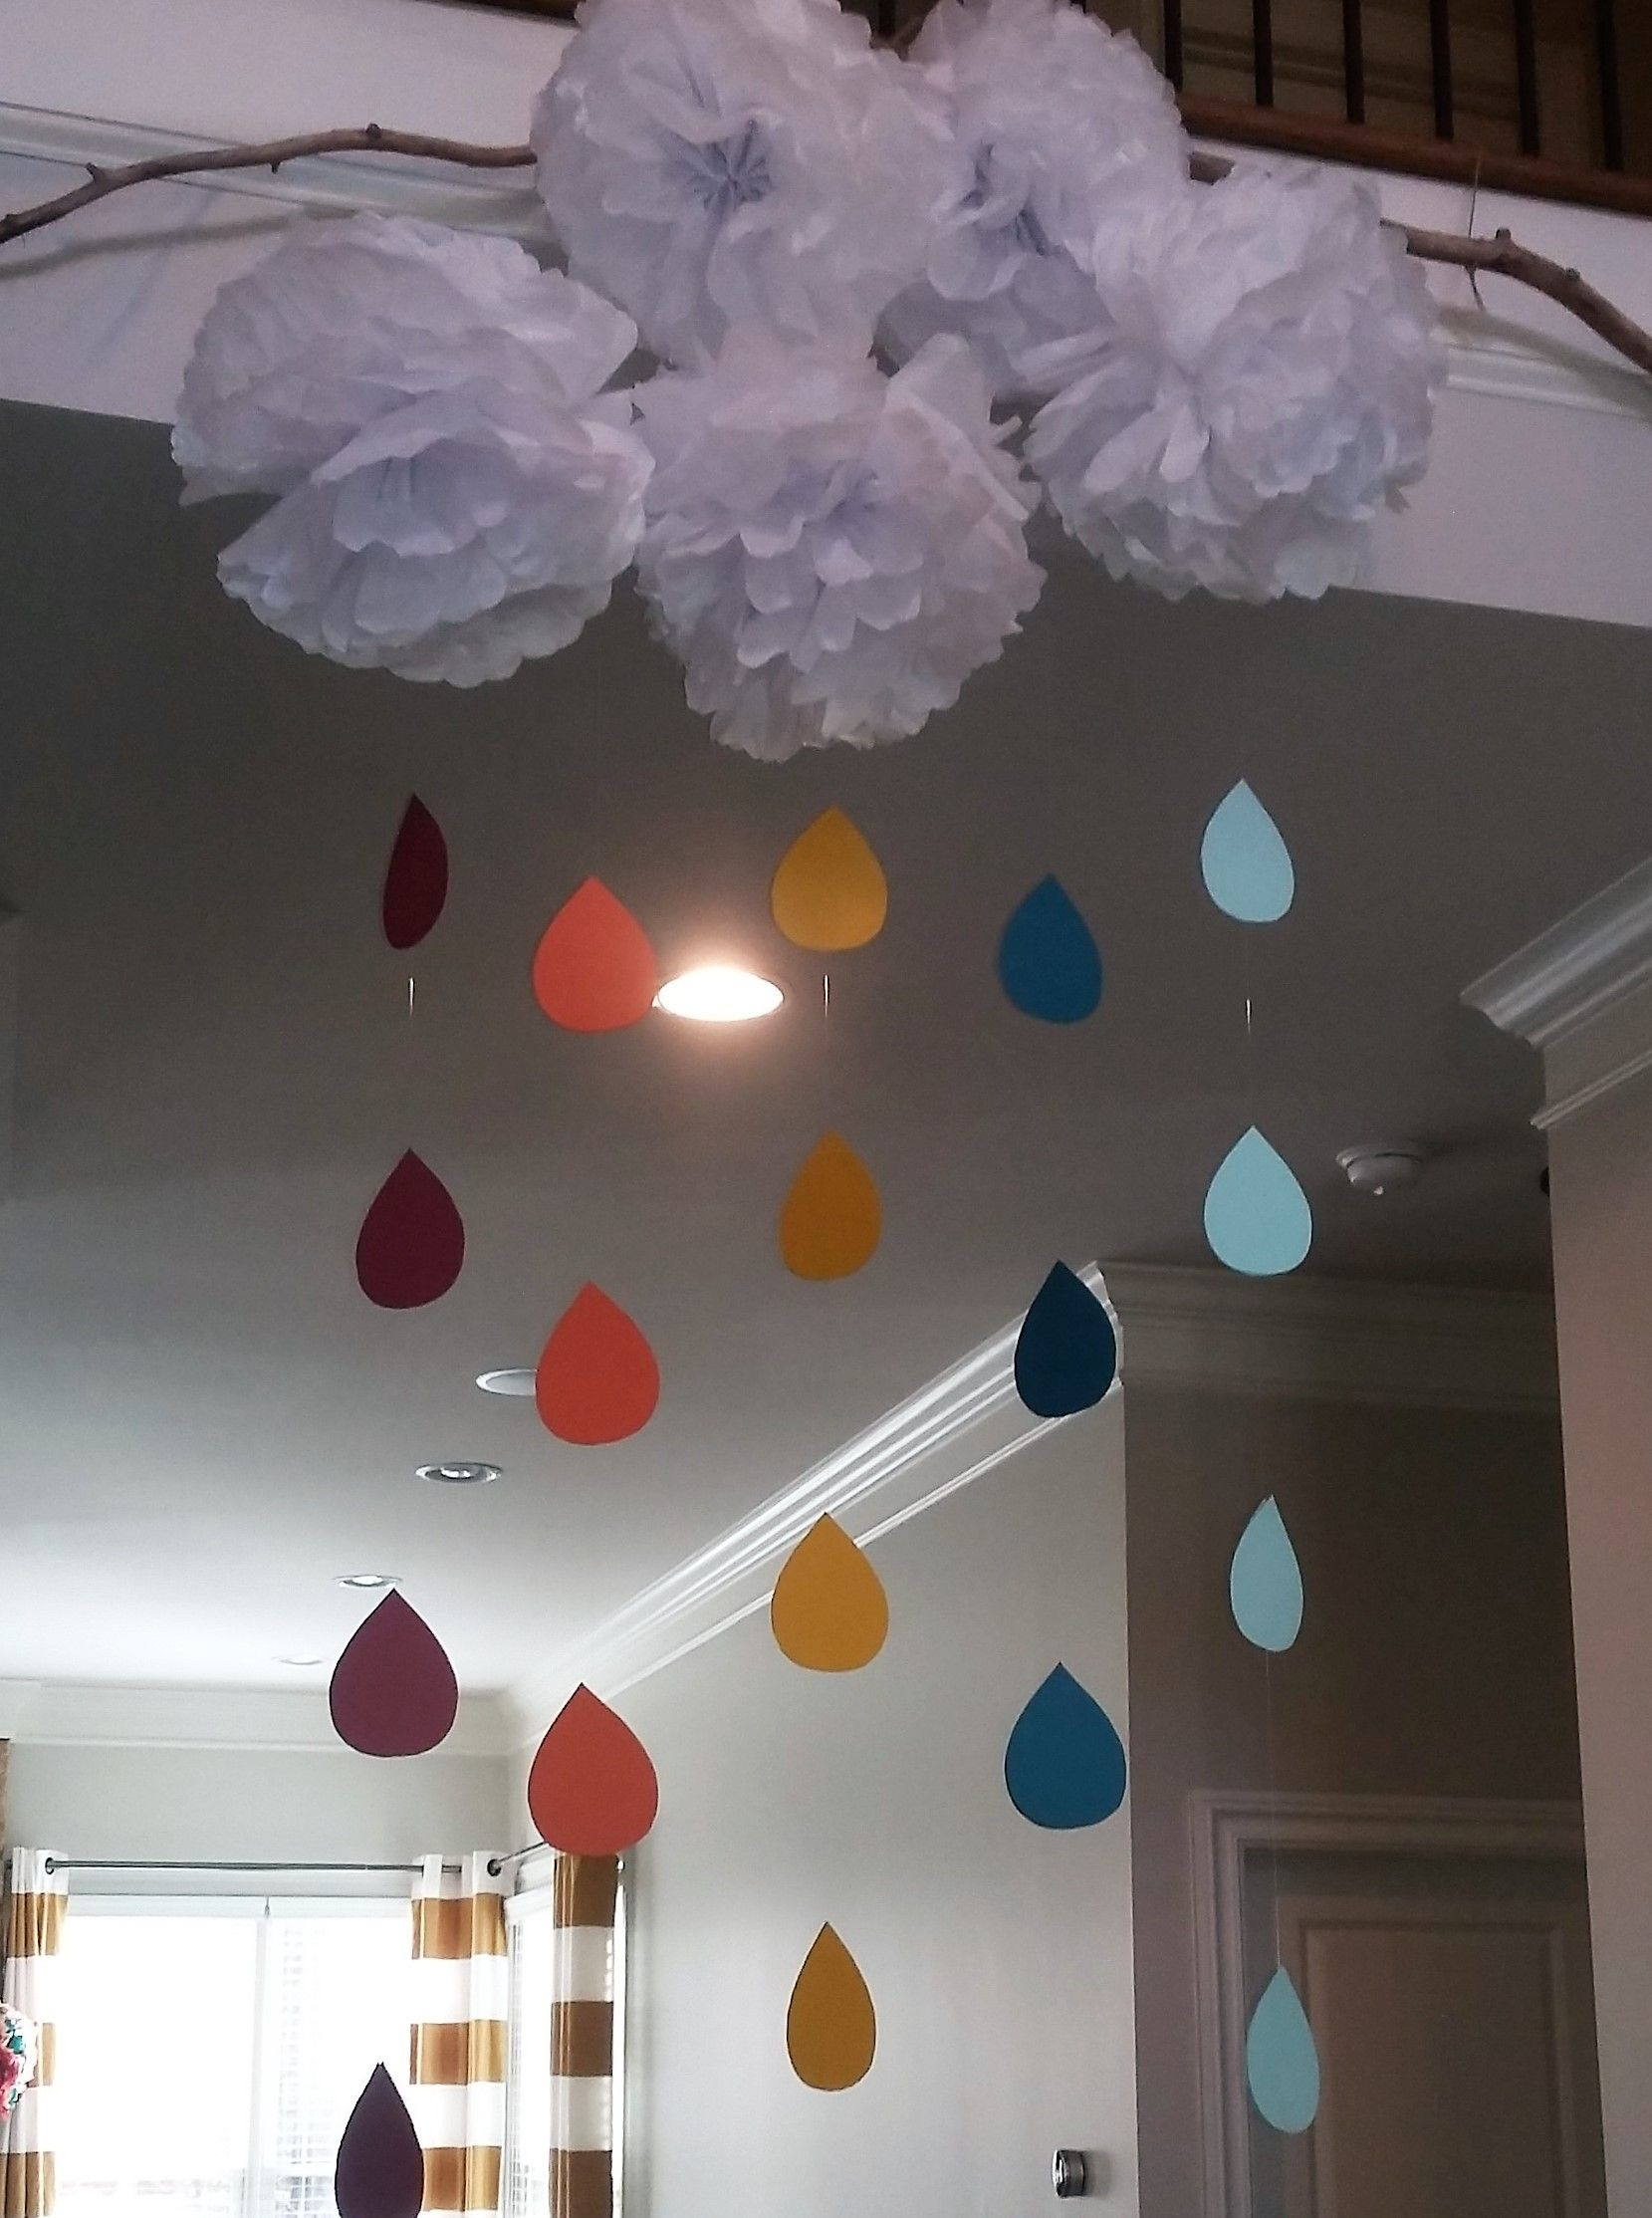 Diy Tissue Paper Clouds And Raindrops Perfect Baby Shower Decor